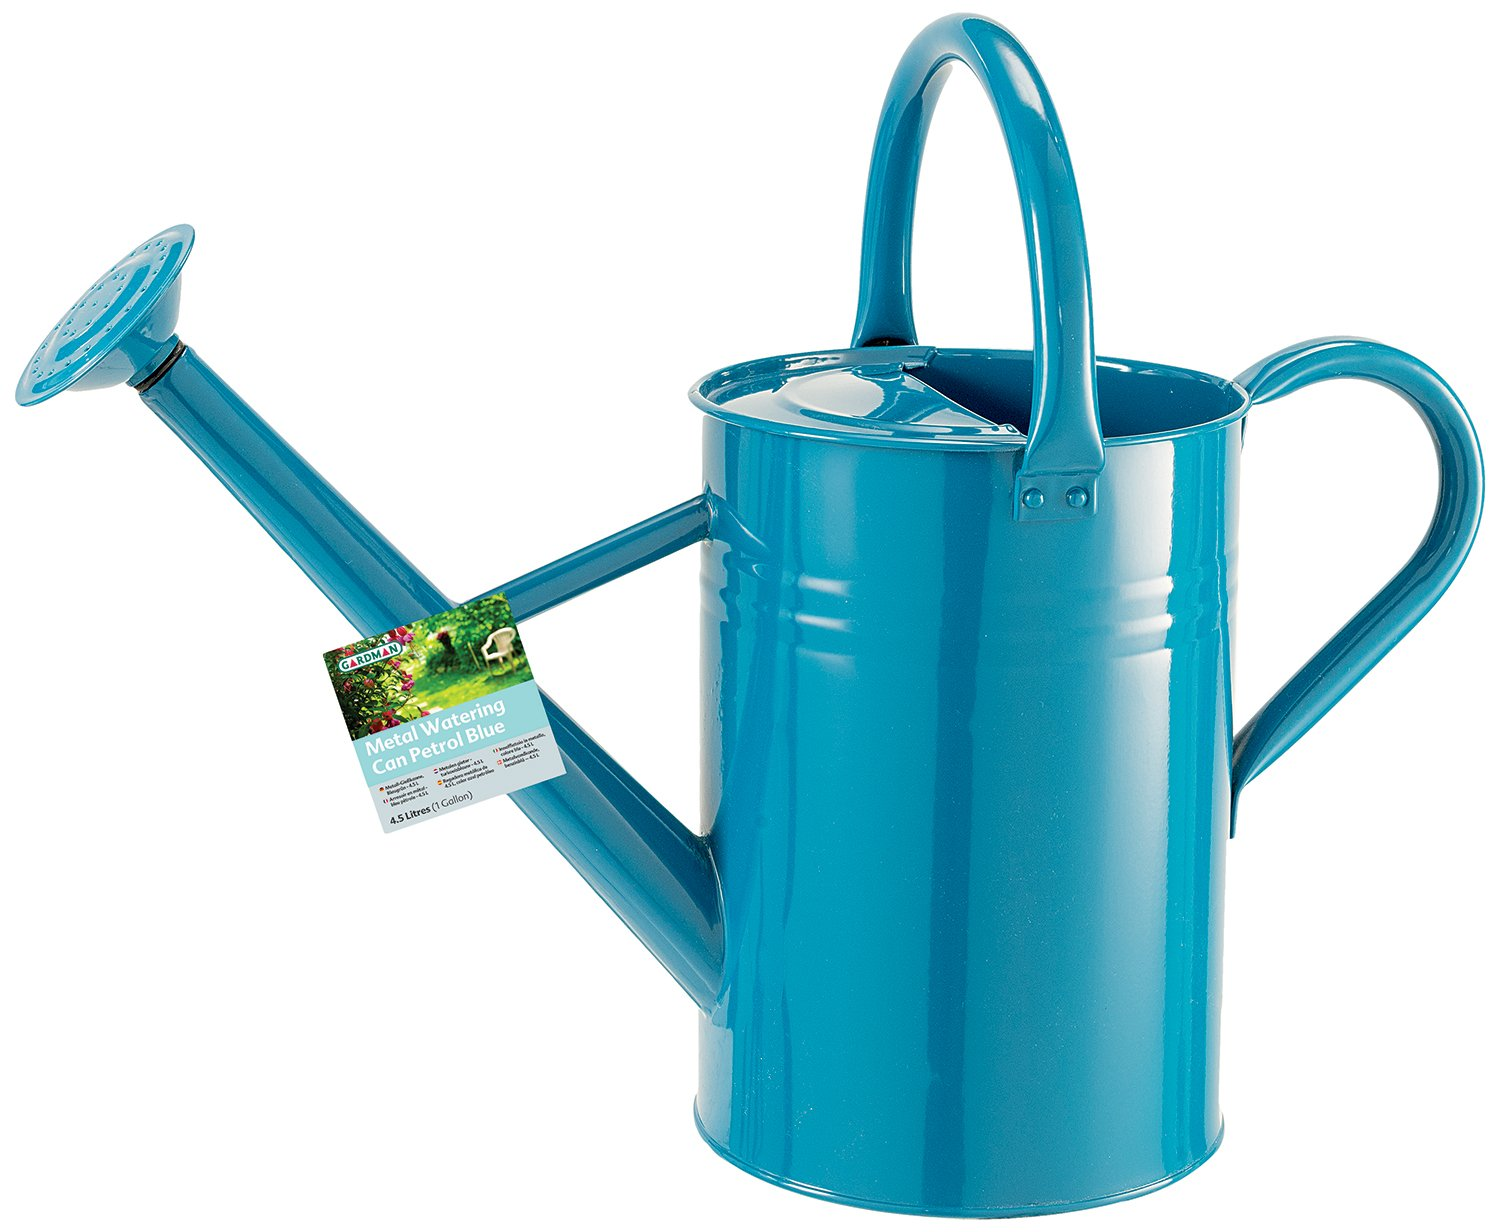 Watering can images galleries with a bite - Sprinkling cans ...